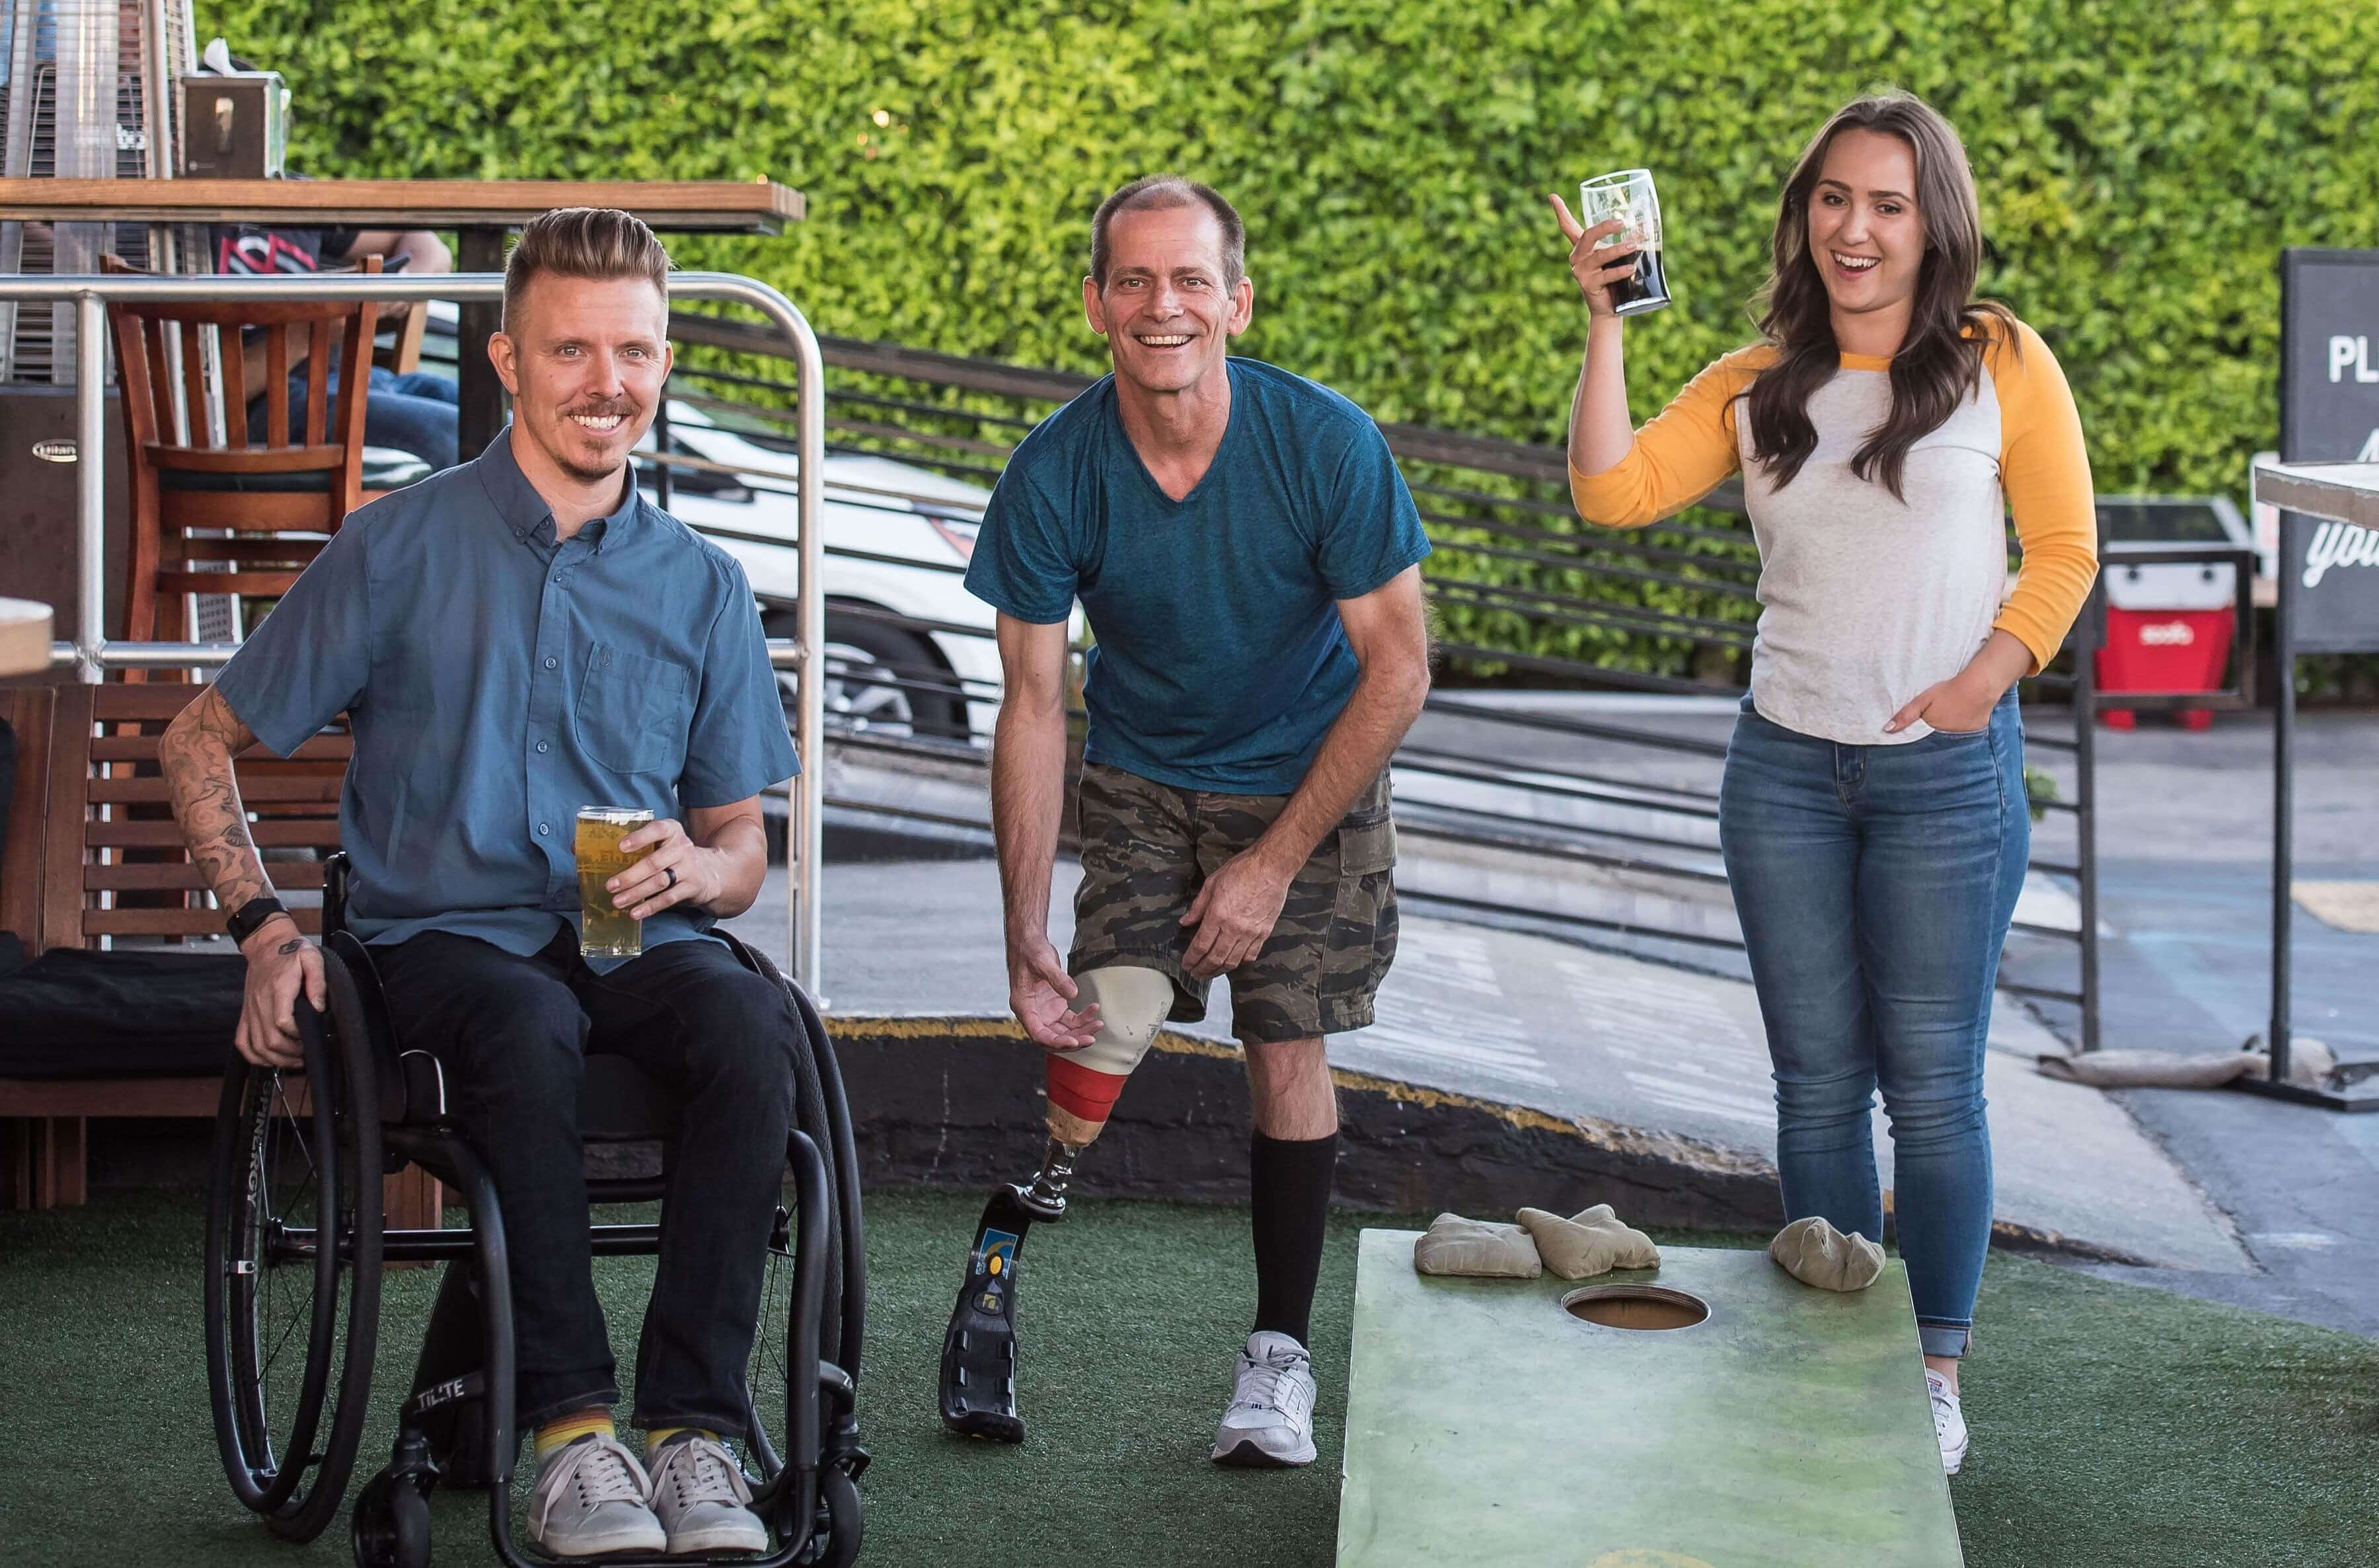 A group of friends with disability laughing together